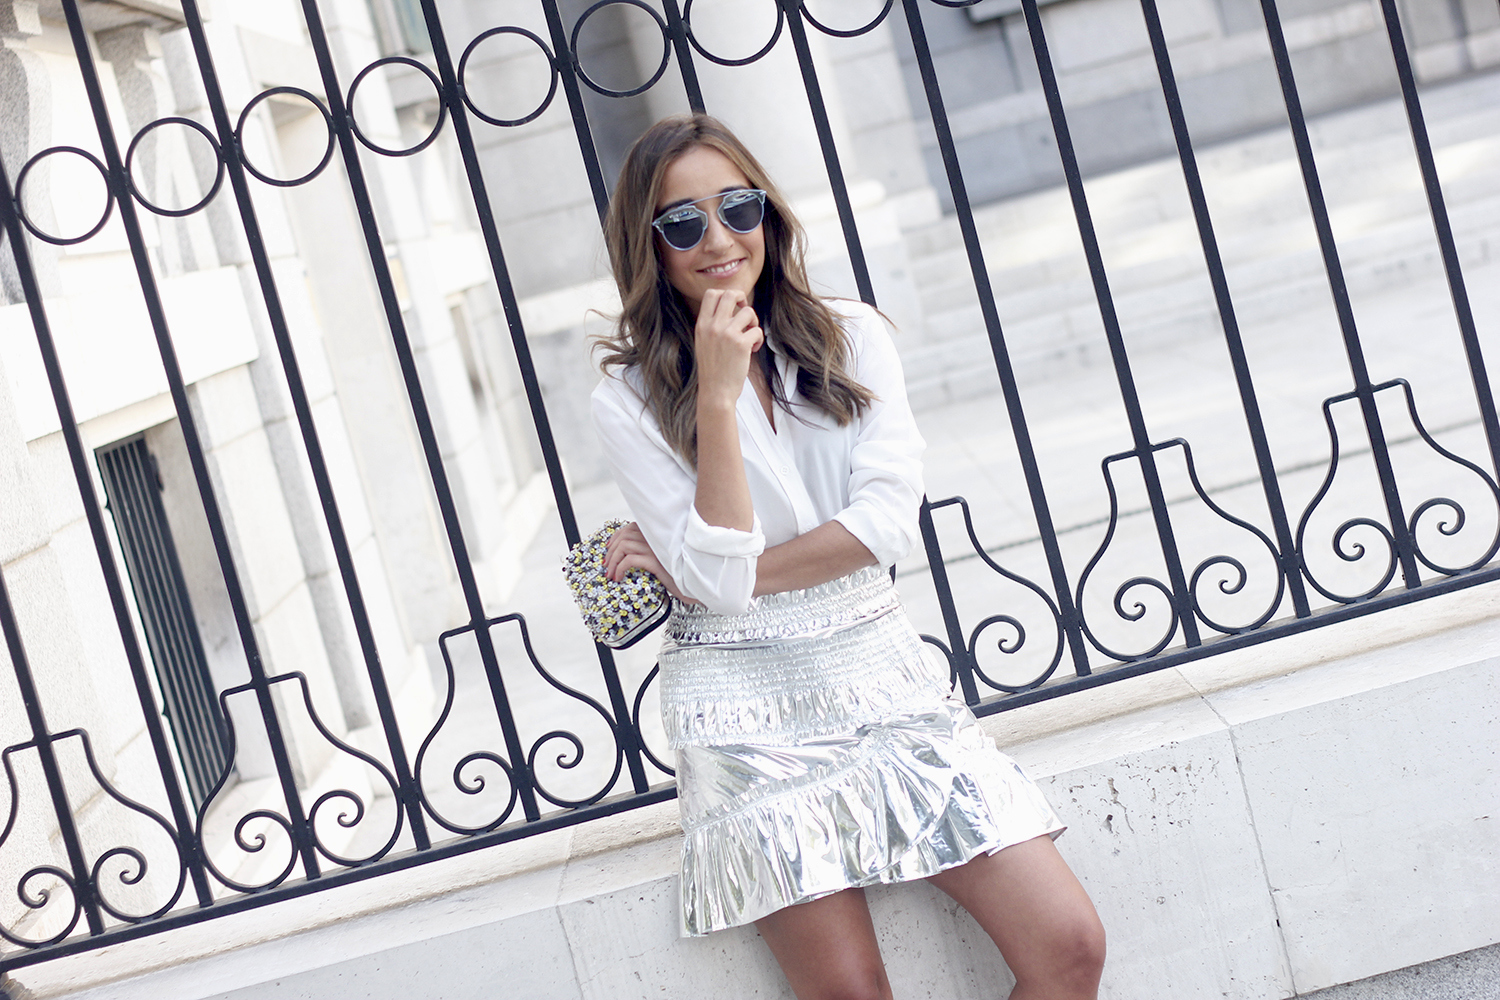 Isabel Marant Metallic Skirt white shirt nude sandals dior so real sunnies outfit style fashion17